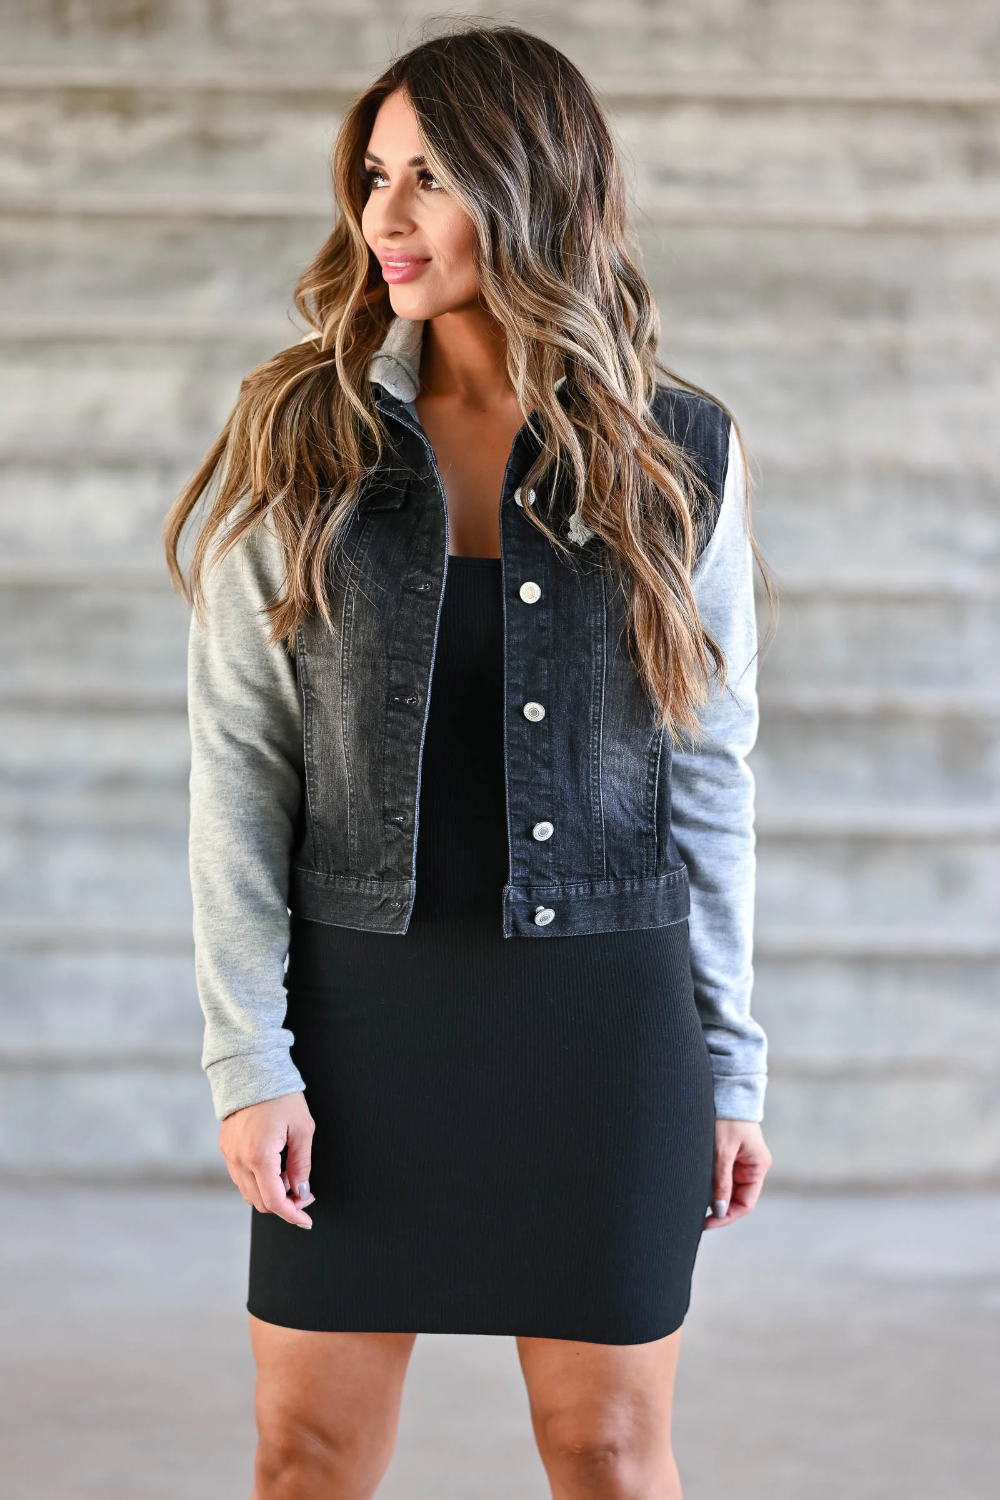 Black bodycon dress with jean jacket download and